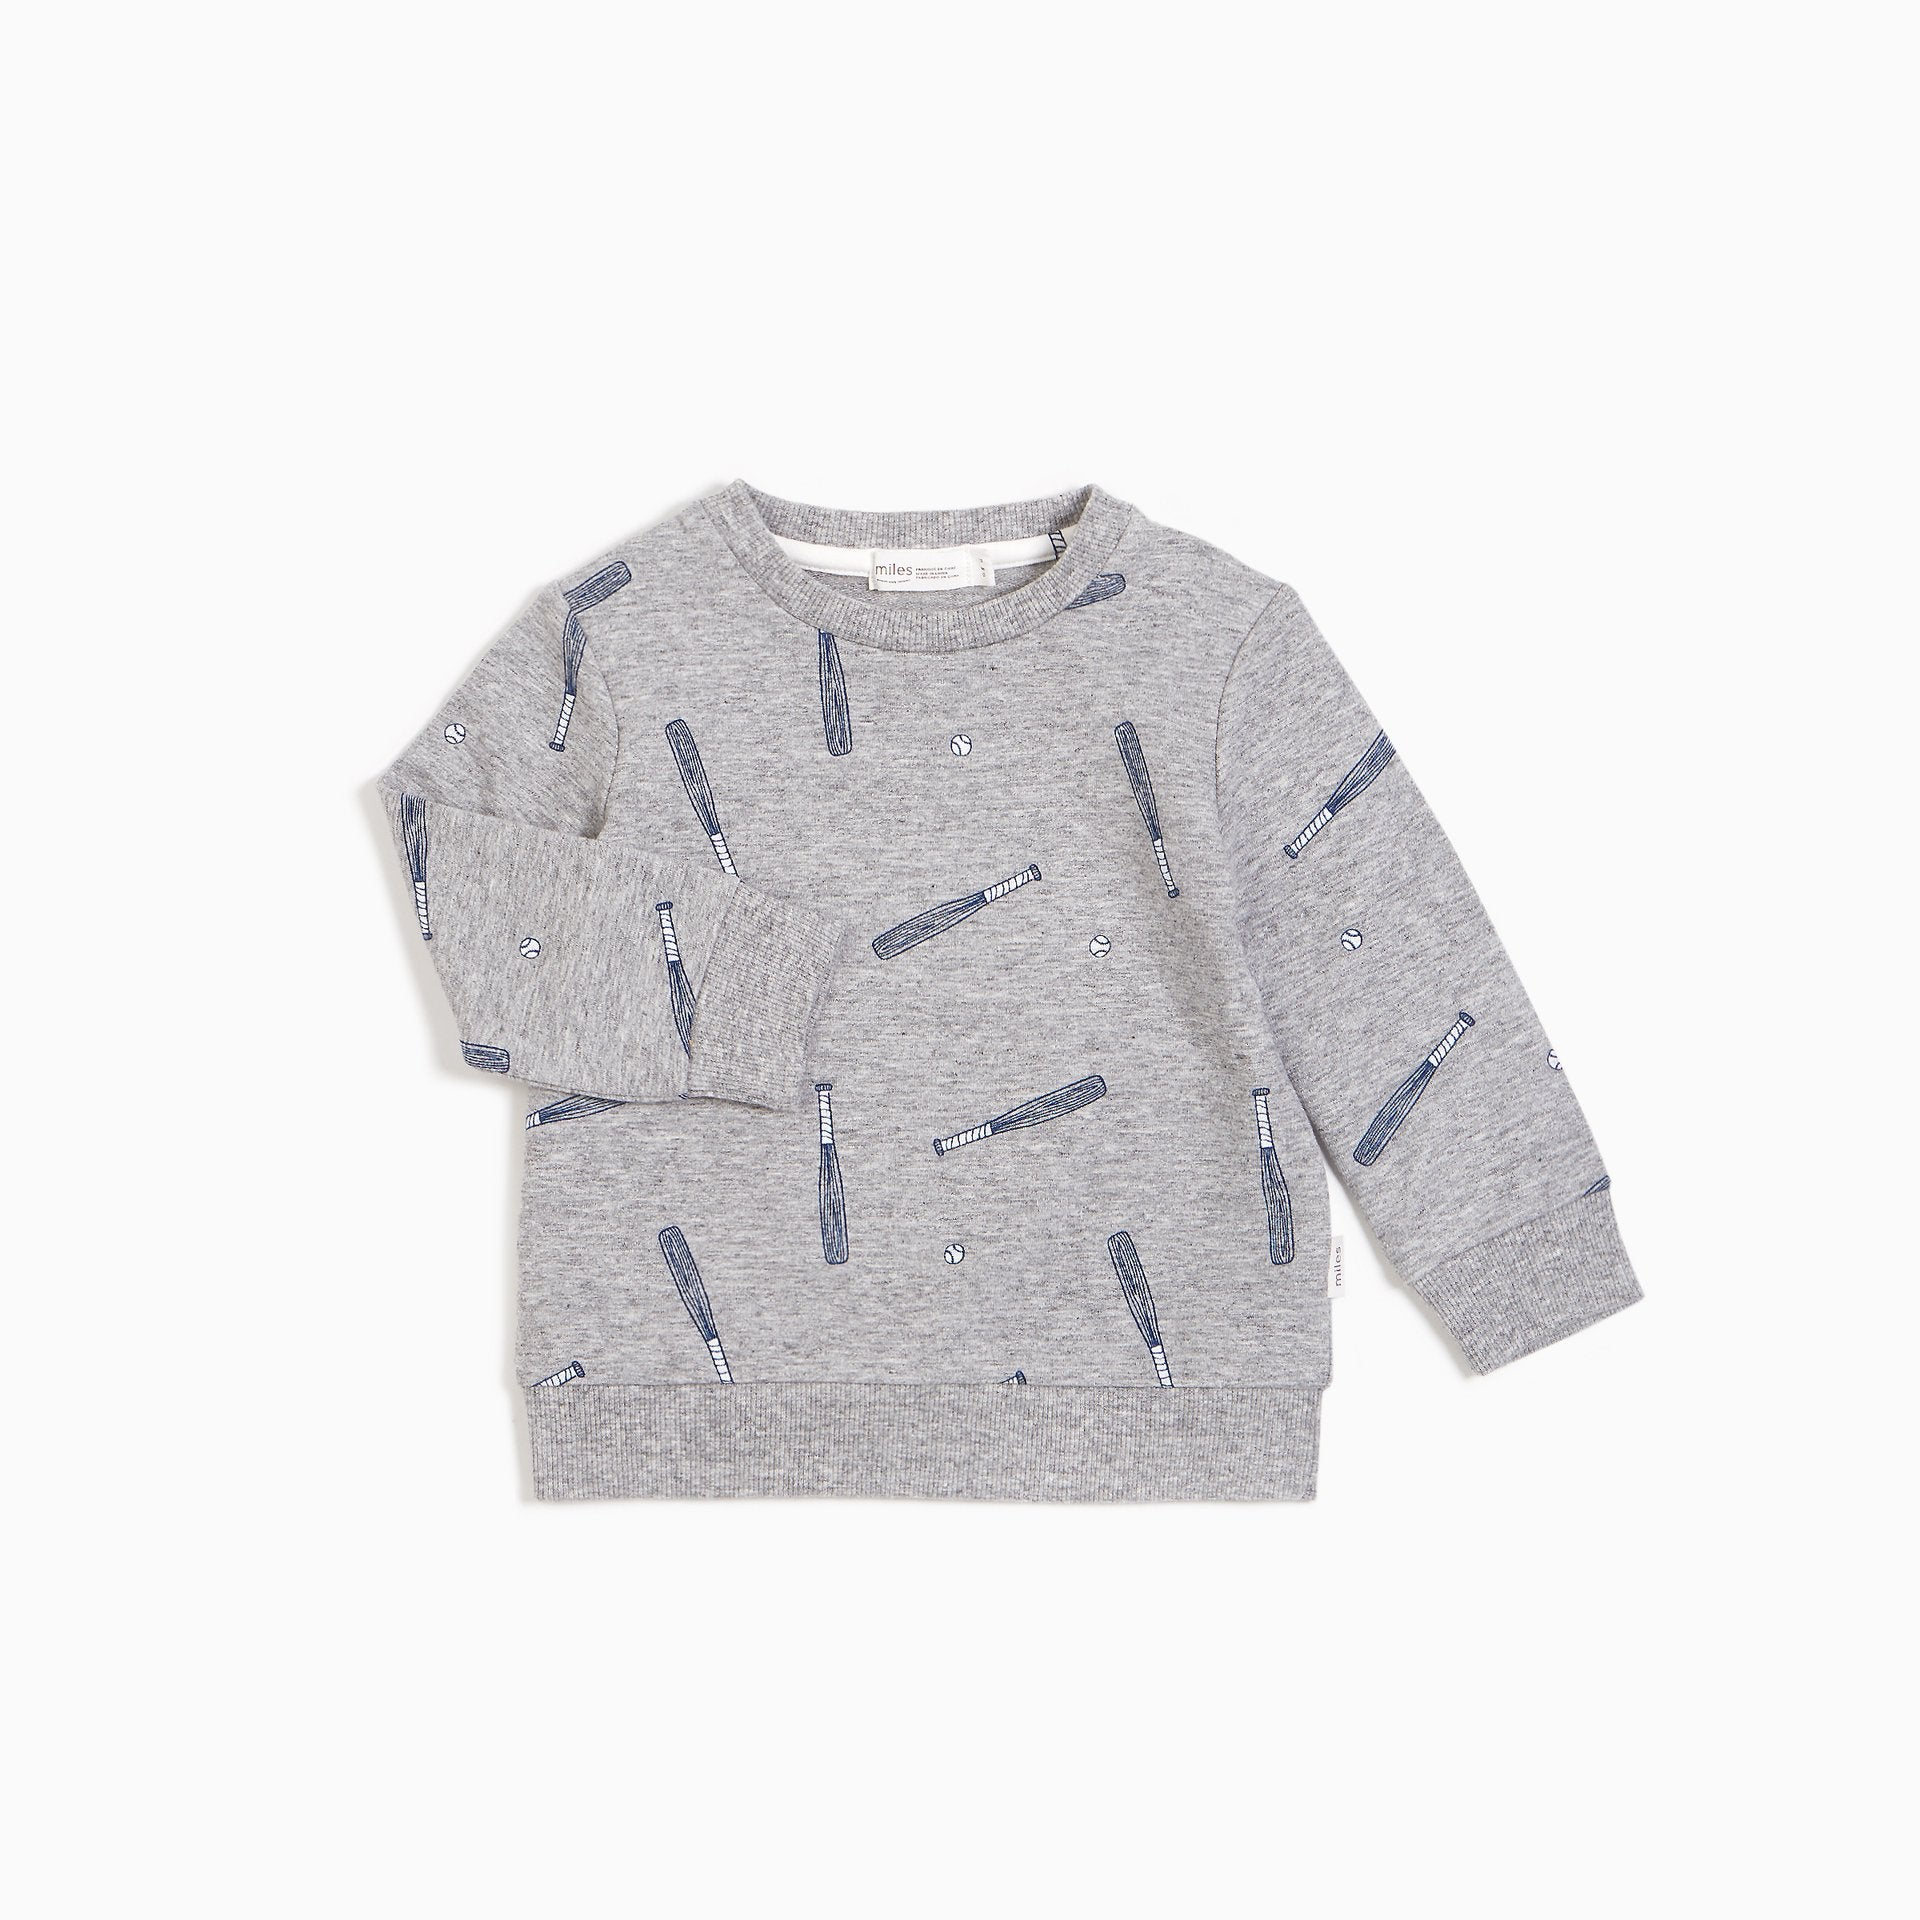 BATTER PRINT GREY SWEATSHIRT